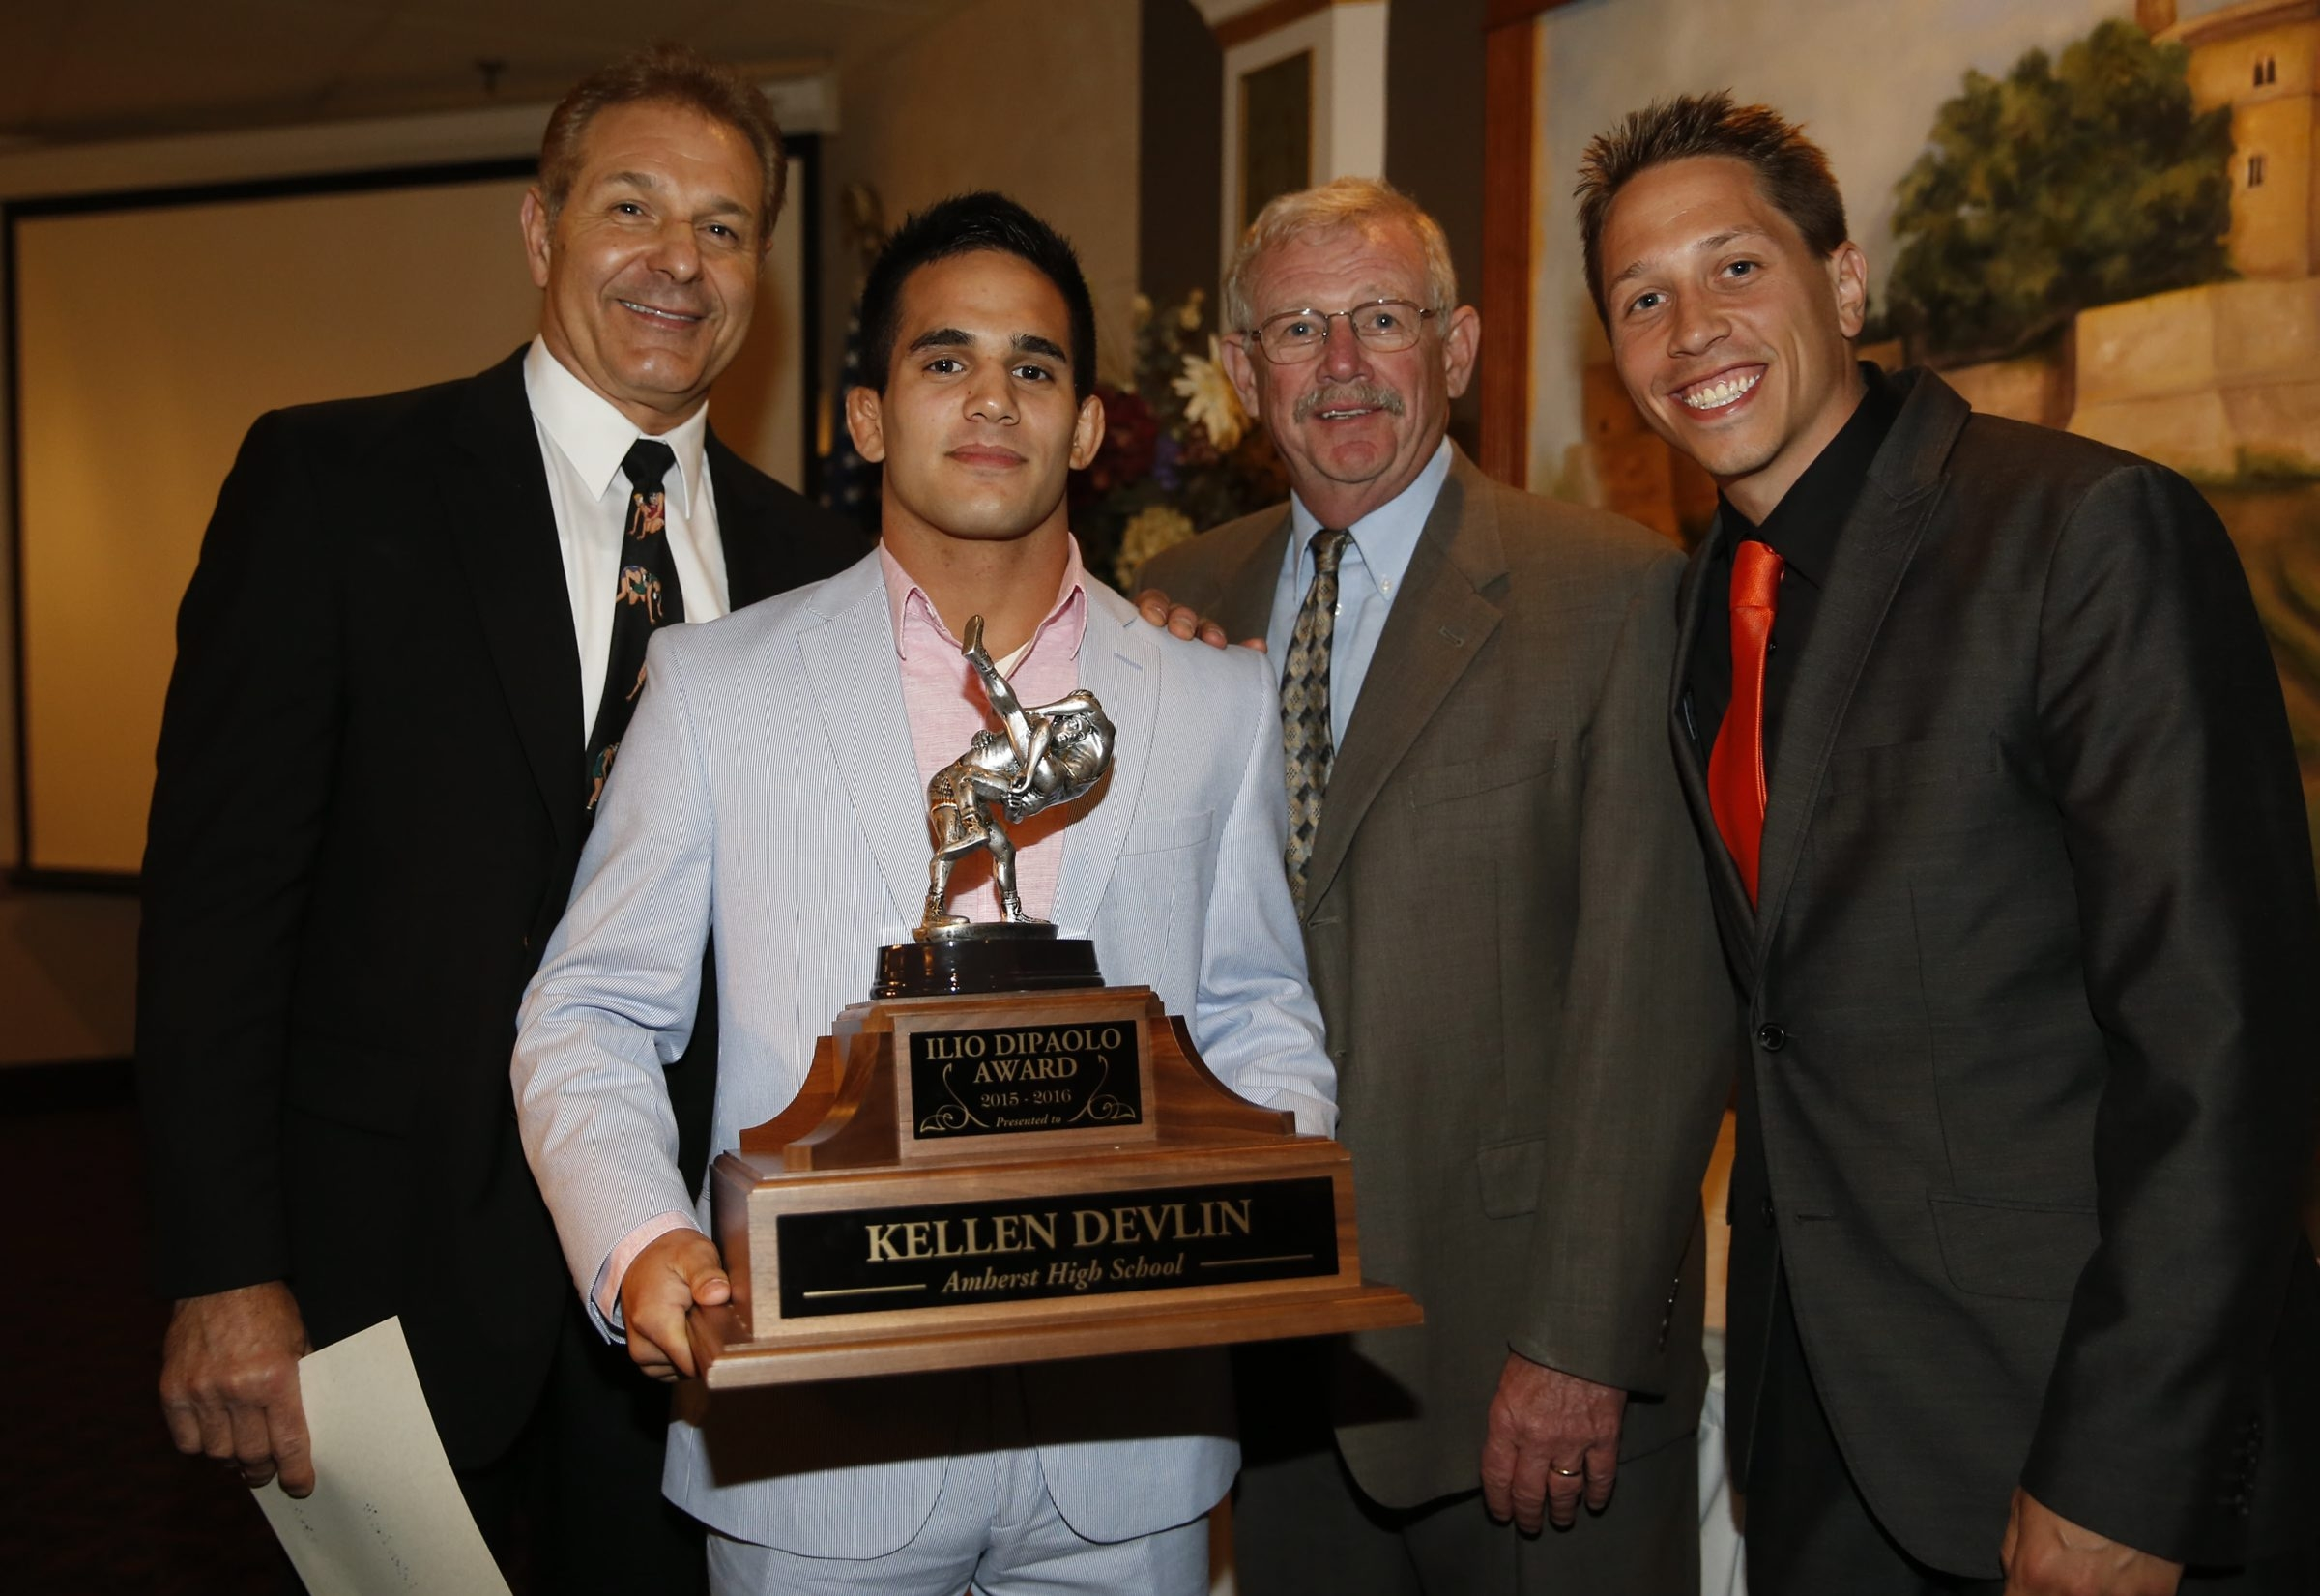 Ilio DiPaolo Scholarship Award winner Kellen Devlin holds his trophy, with selection committee members Dennis DiPaolo, left, Bud Carpenter and Kyle Illig.